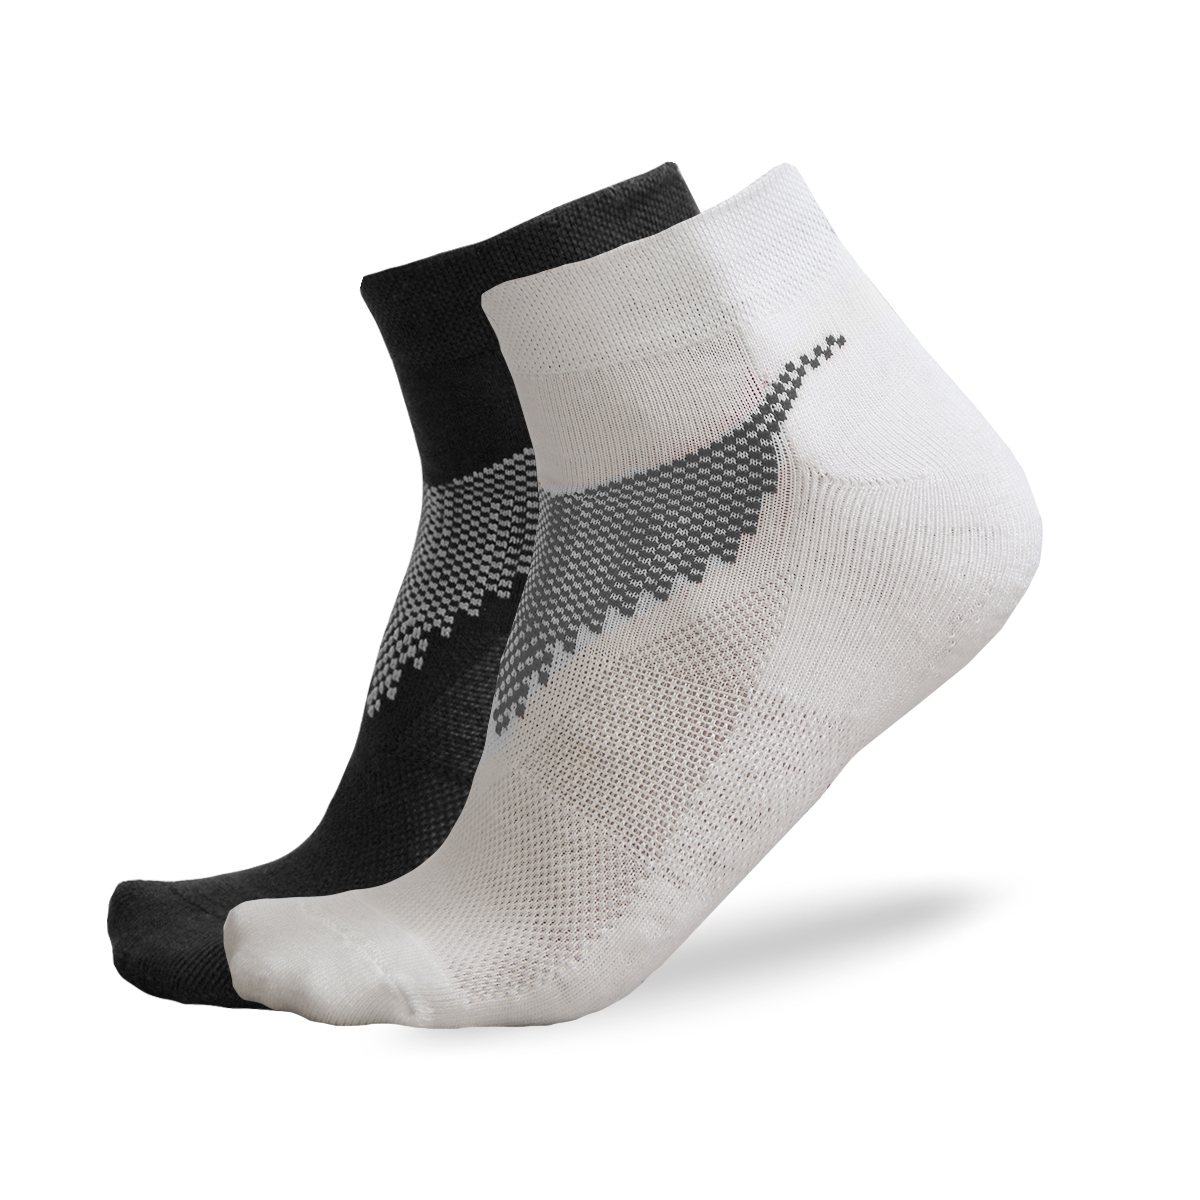 FREEZ ANCLE SOCKS 2-pack black+white 35-38